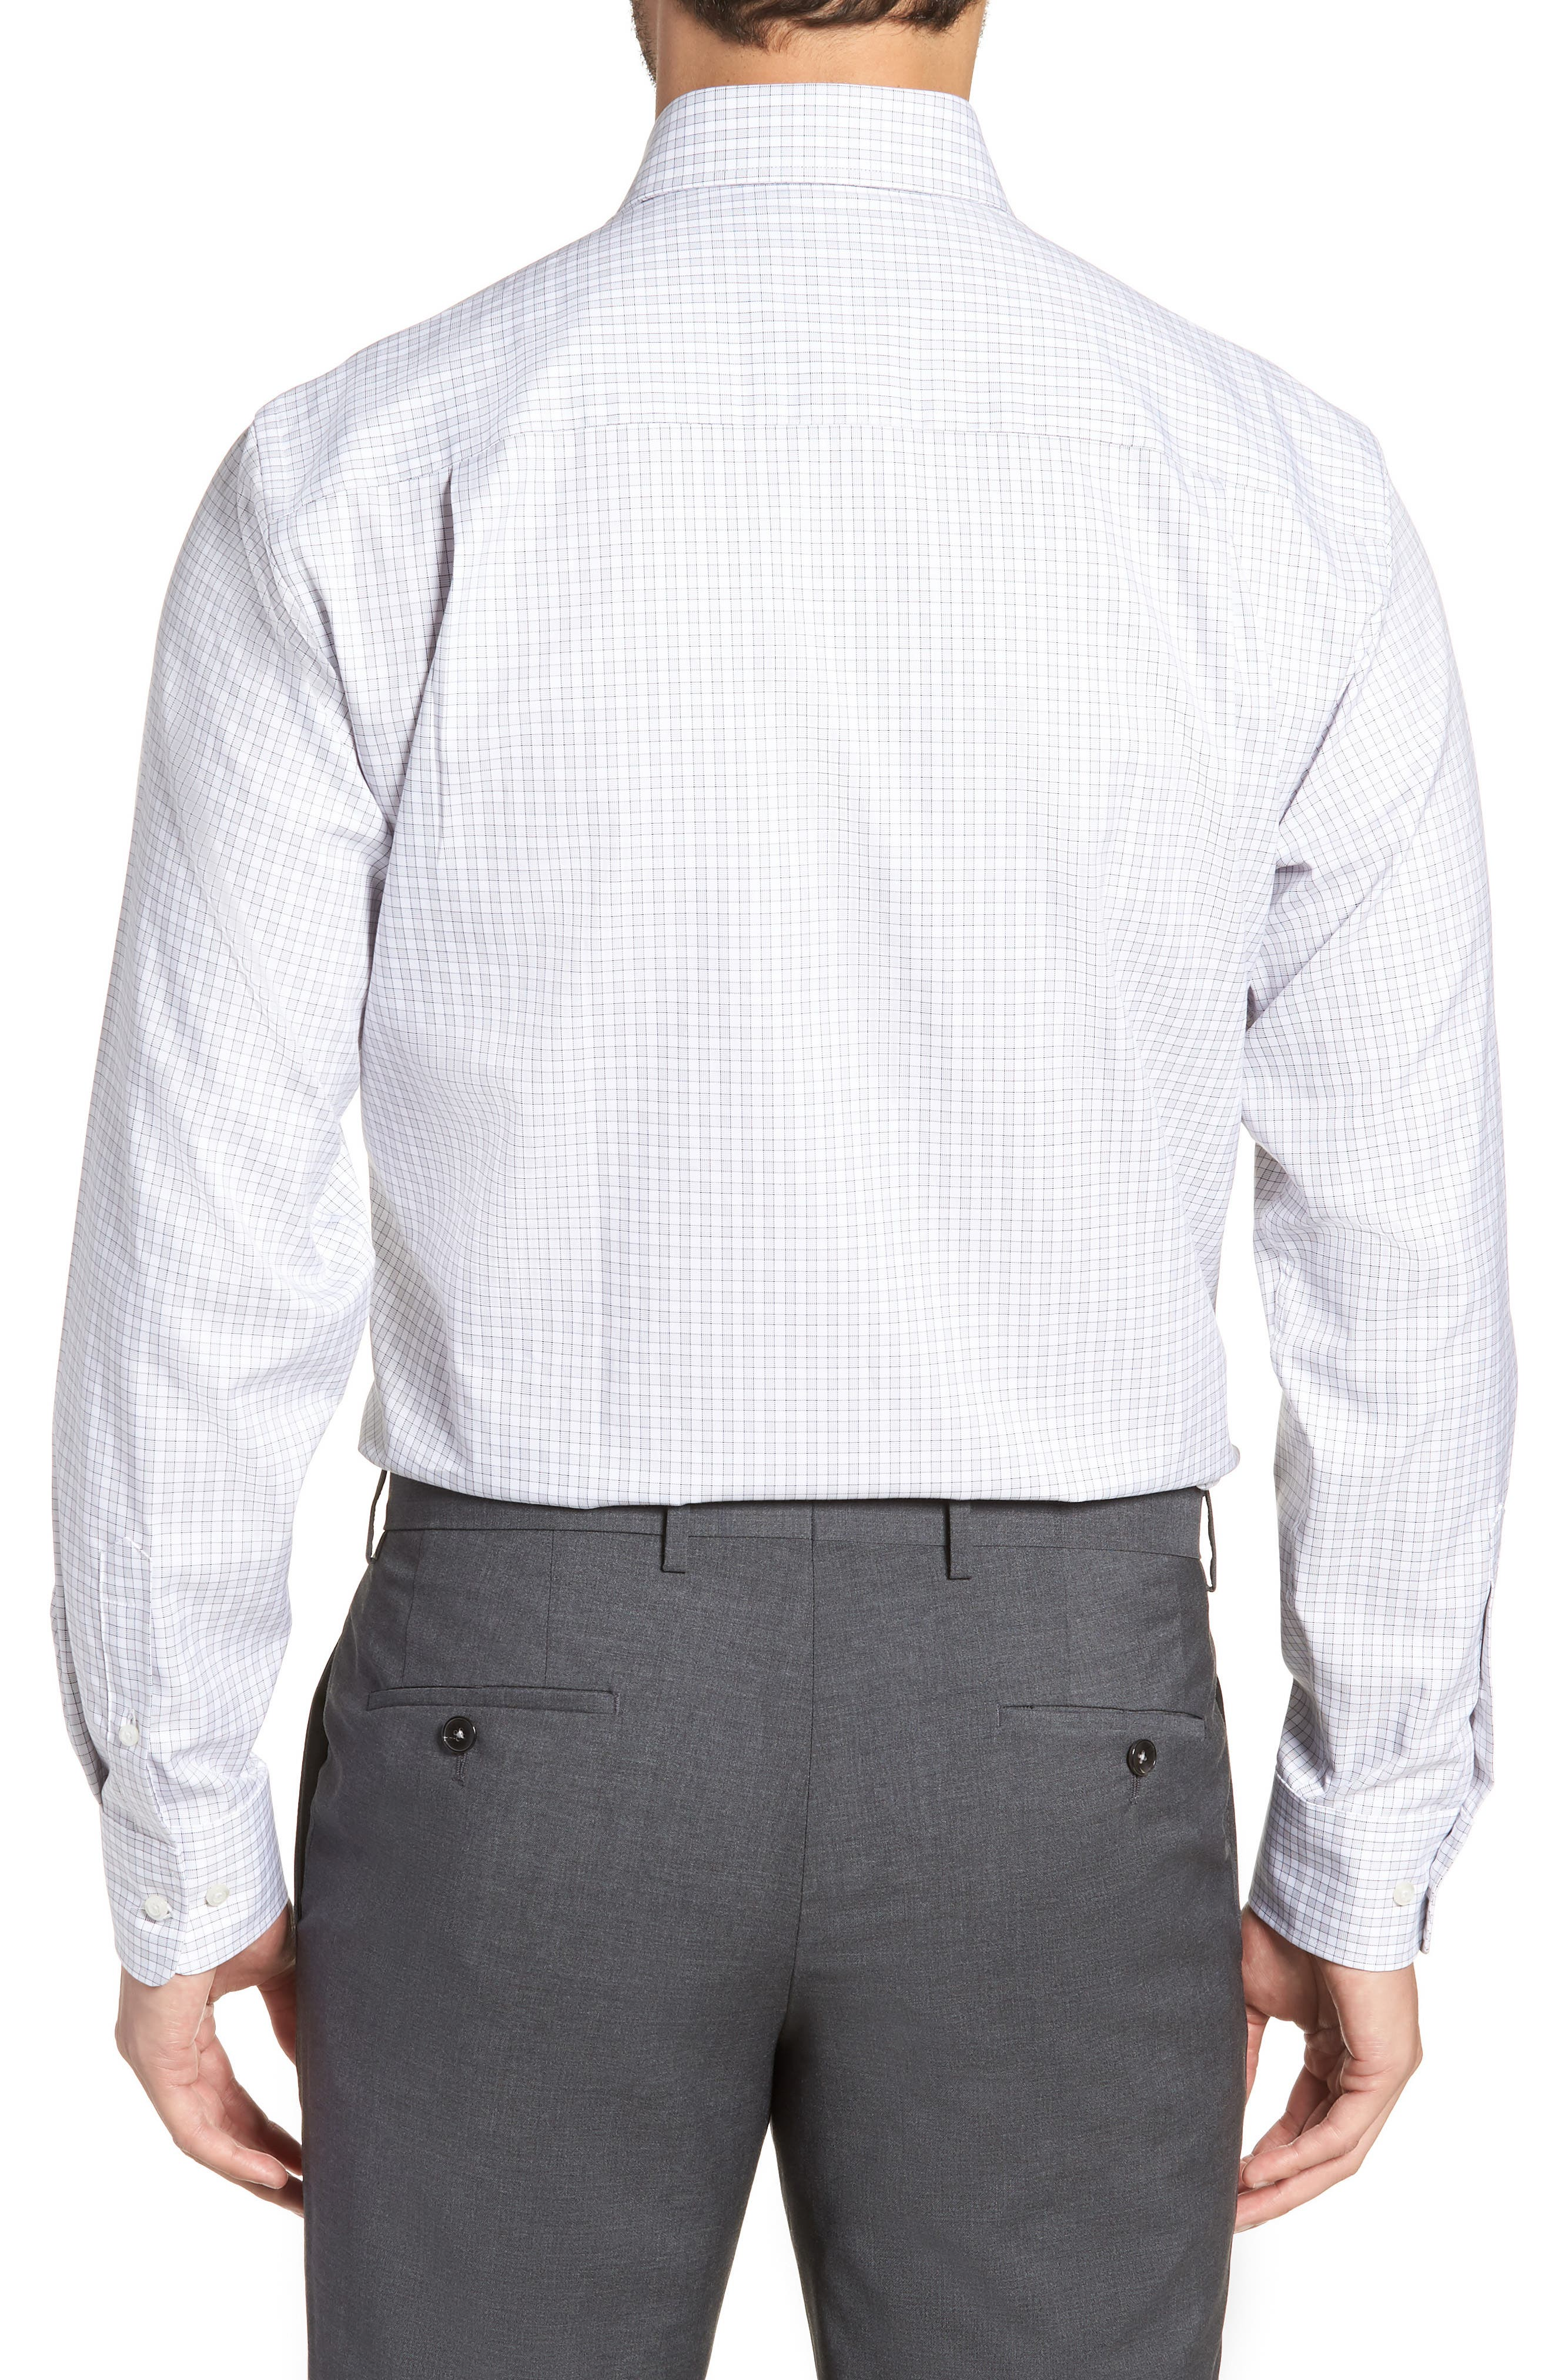 Regular Fit Check Dress Shirt,                             Alternate thumbnail 3, color,                             GRAY